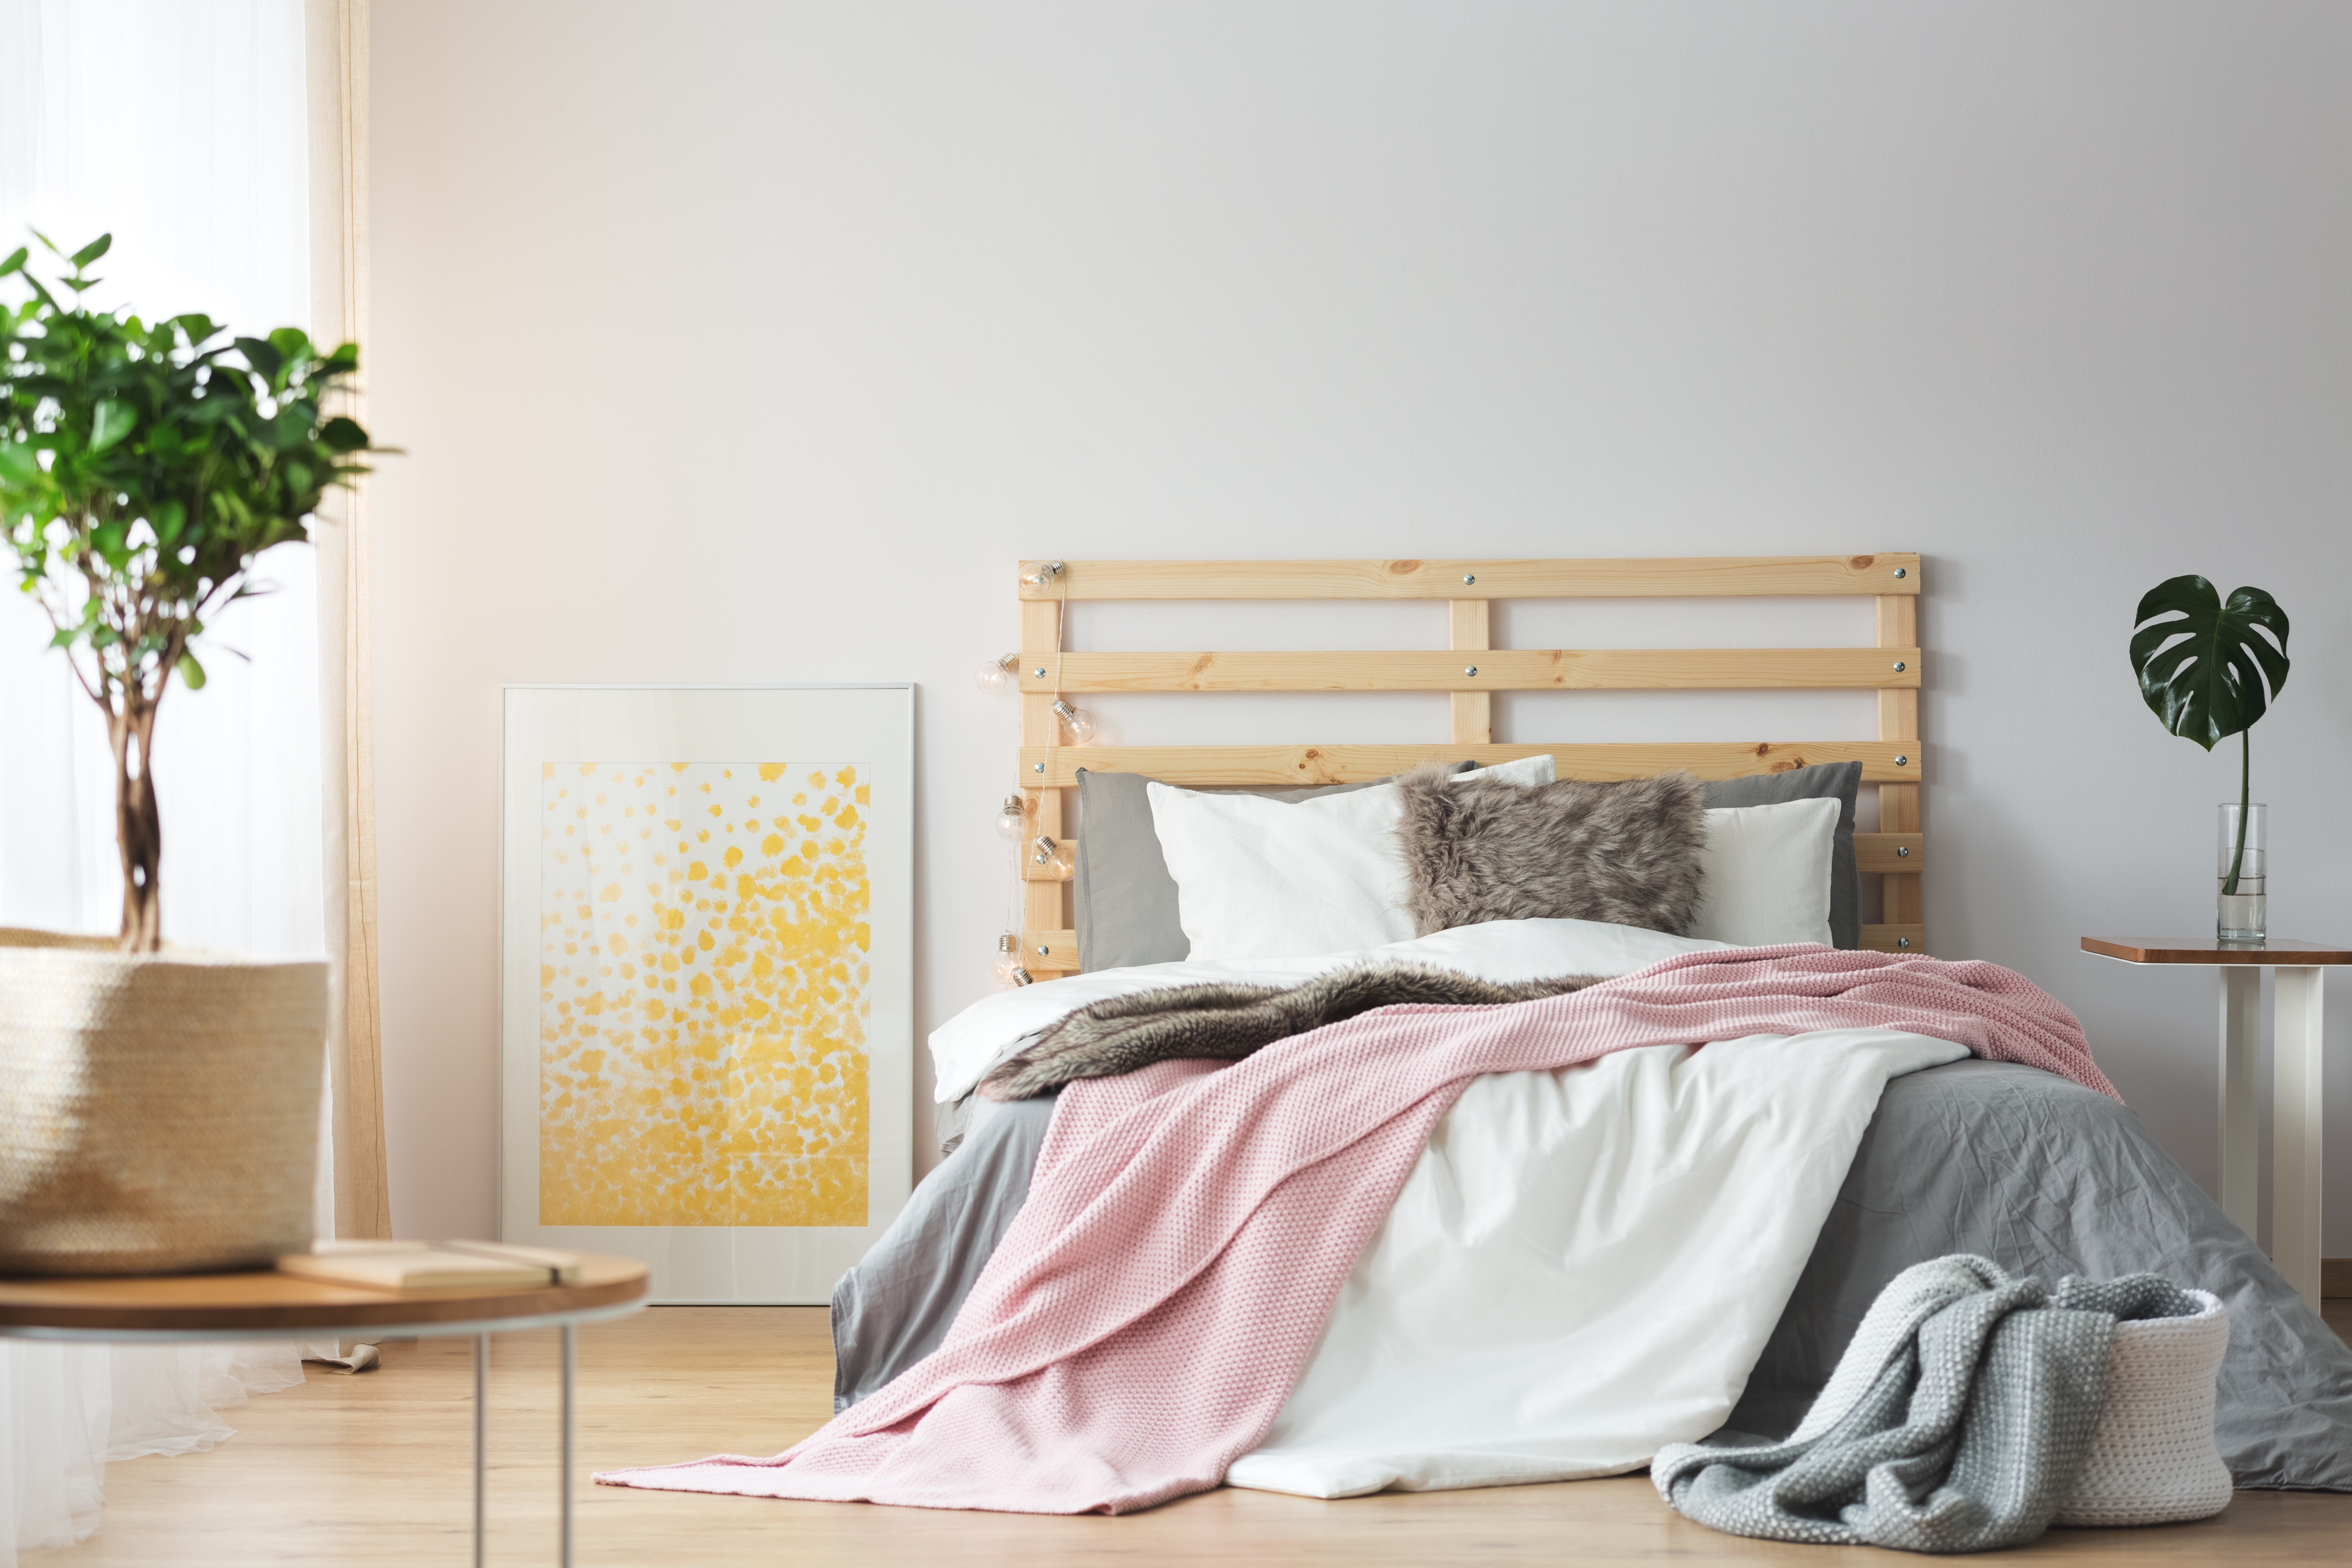 Messy pink, white, and gray bedding